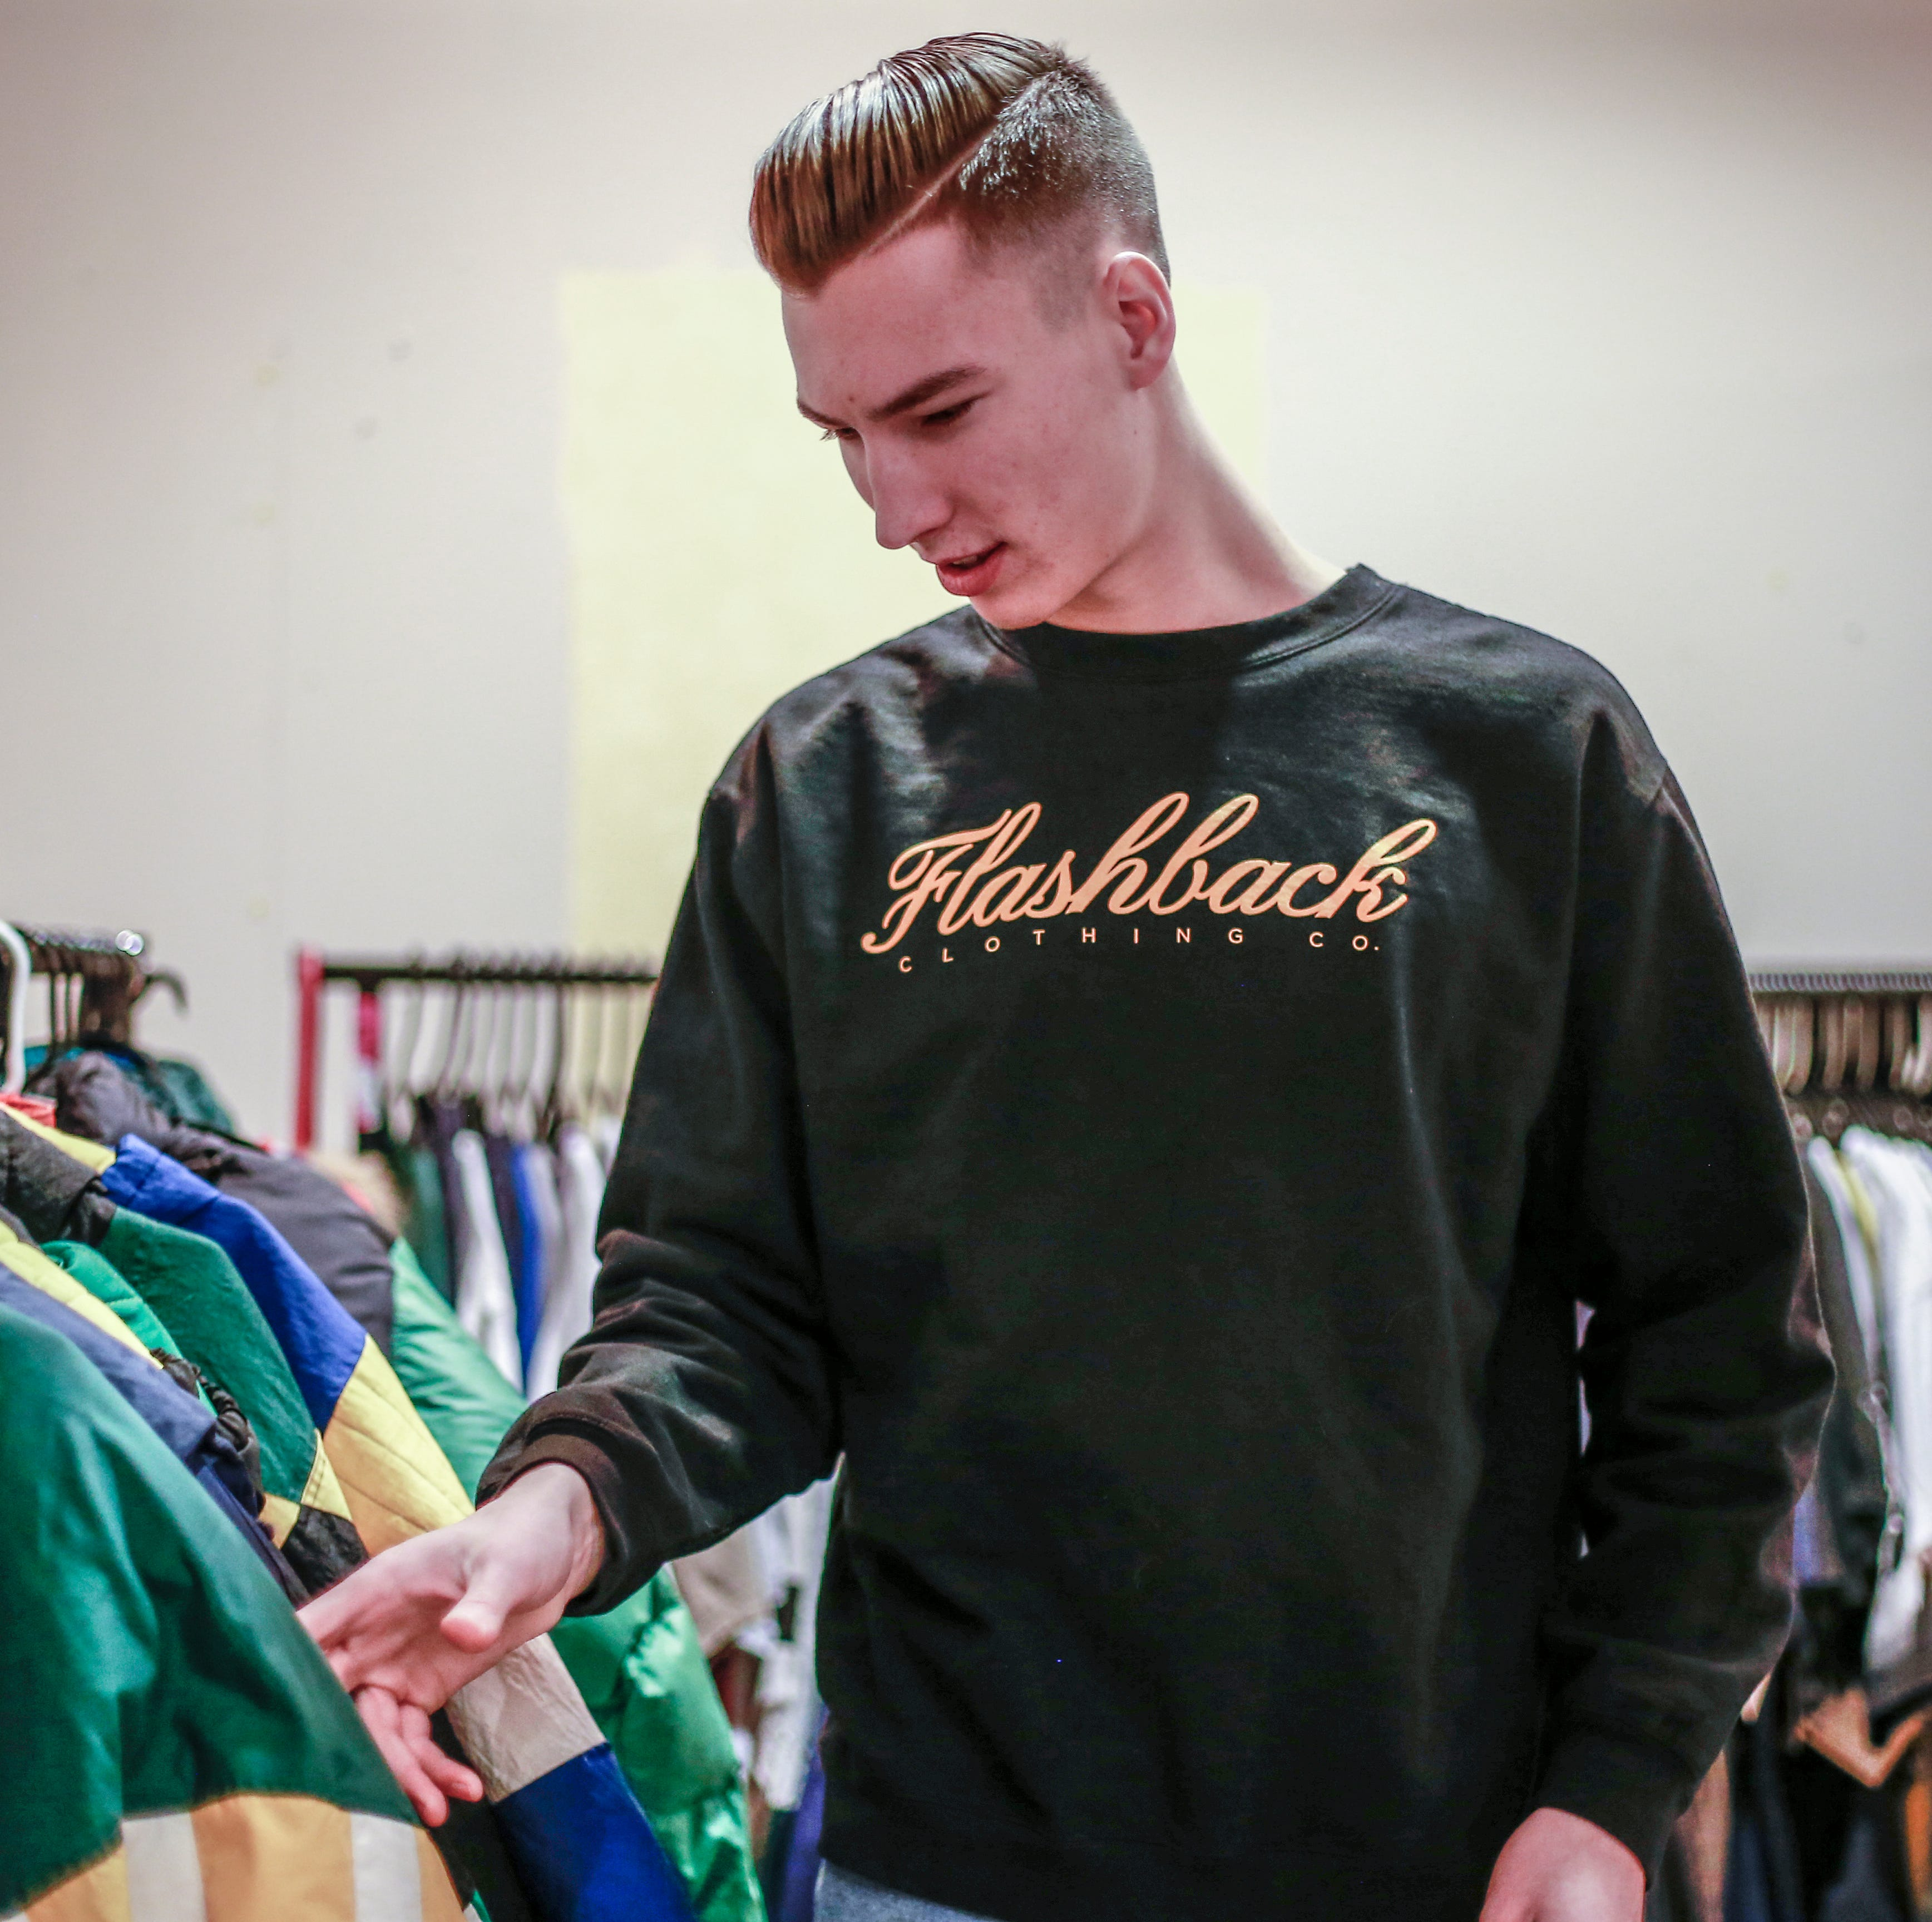 Flashback Clothing Co. is Wausau West grad's creative outlet and a refuge from bullying